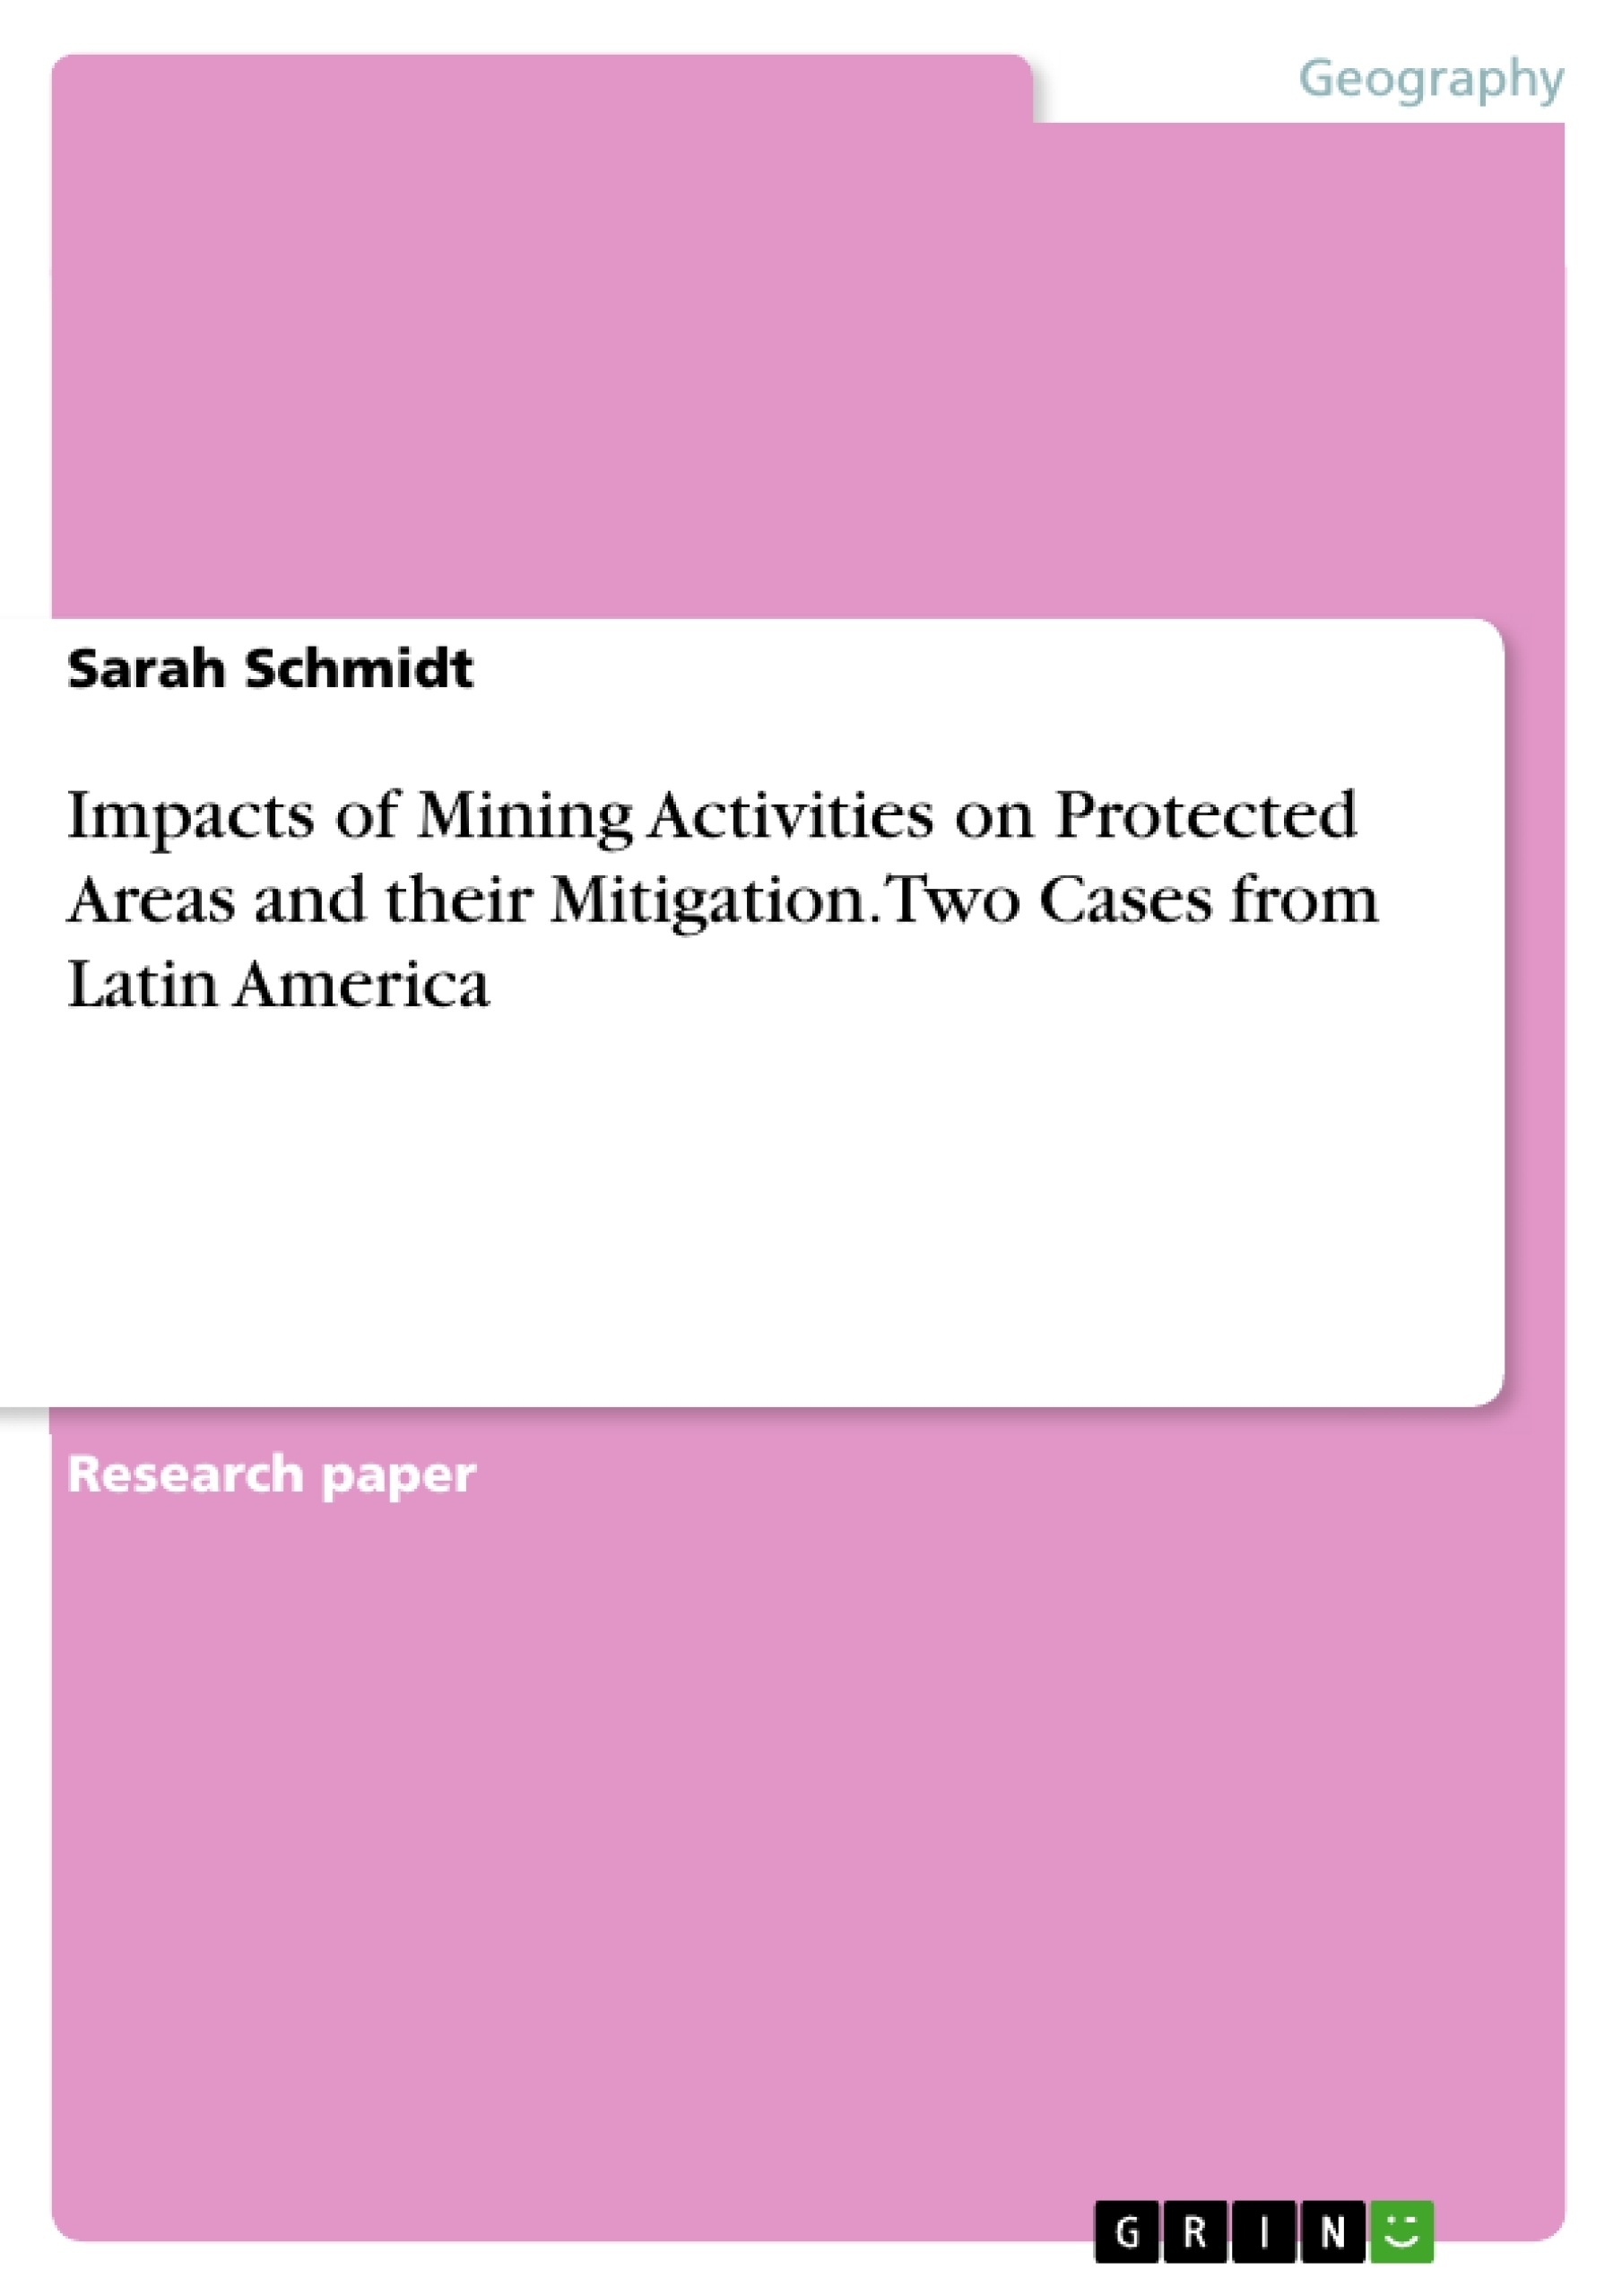 Title: Impacts of Mining Activities on Protected Areas and their Mitigation. Two Cases from Latin America